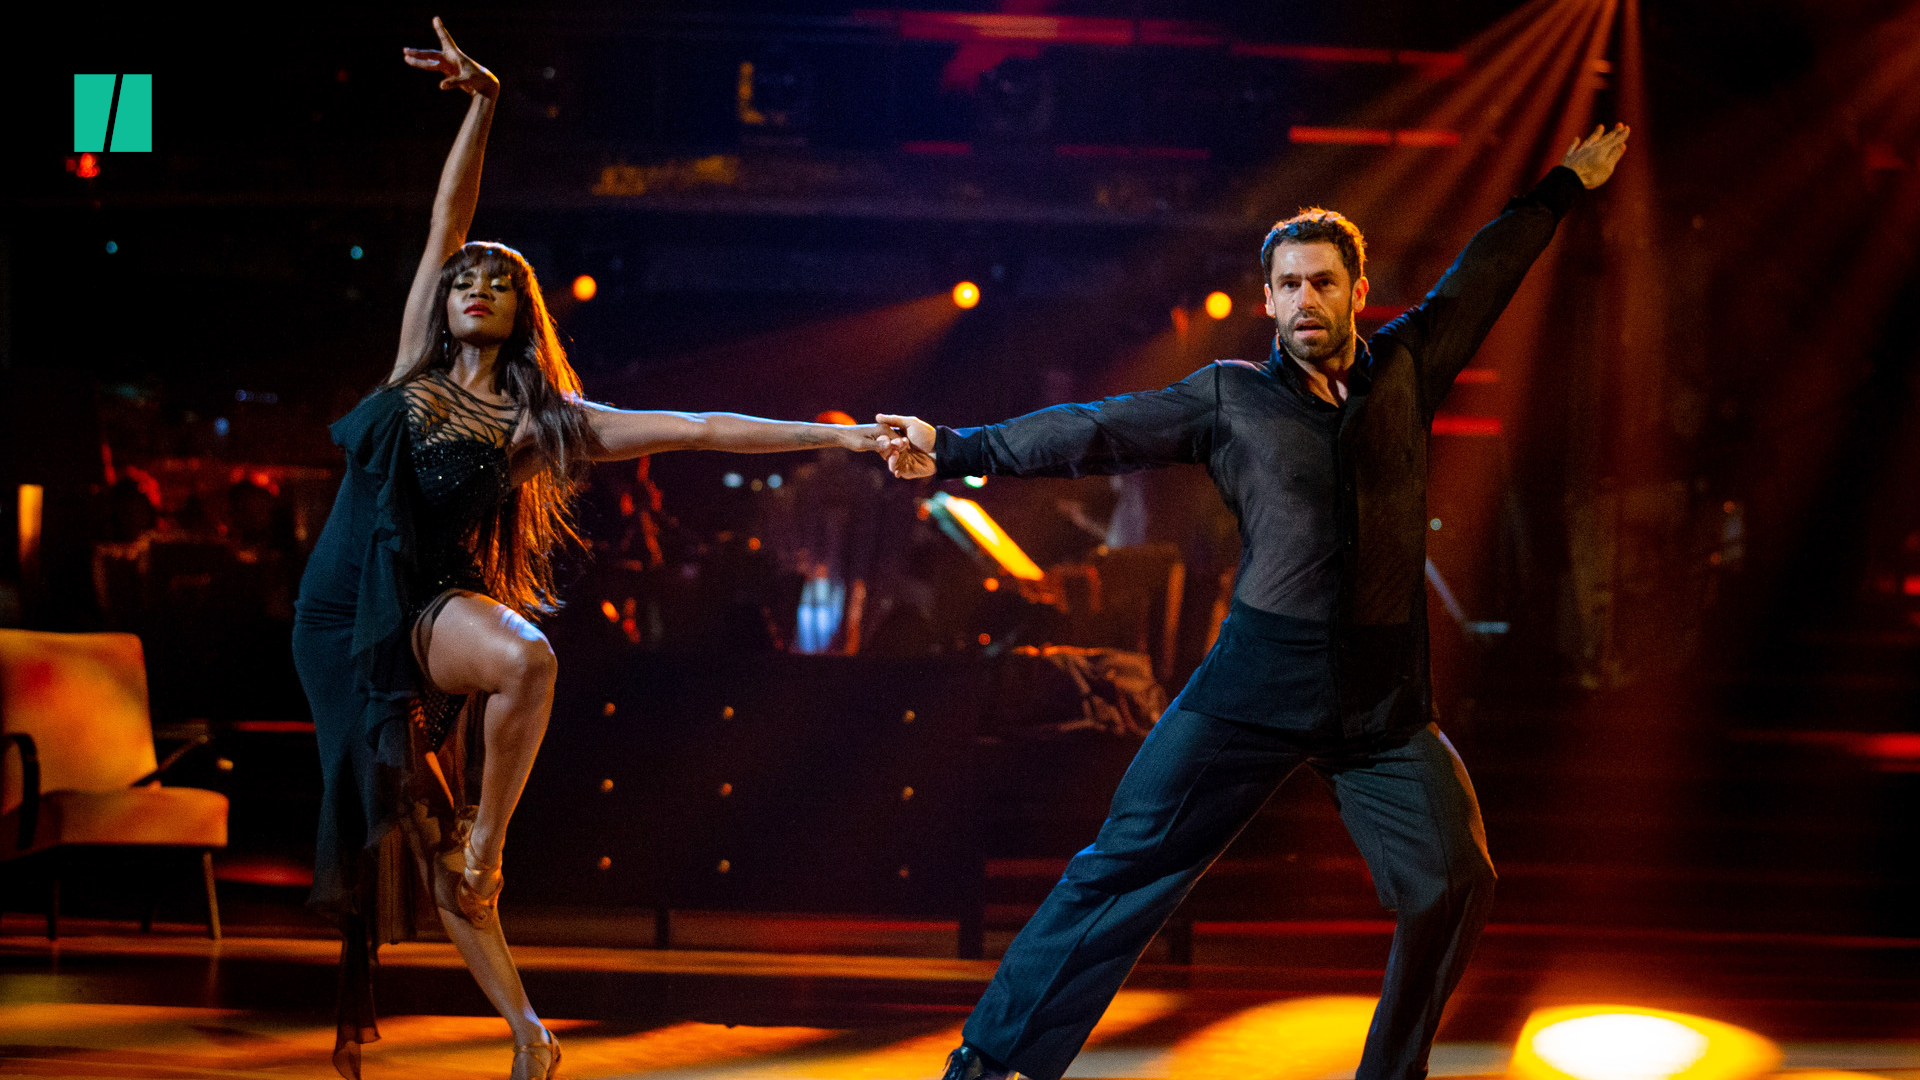 Strictly's Kelvin Fletcher And Oti Mabuse Come Clean About Behind-The-Scenes Rows